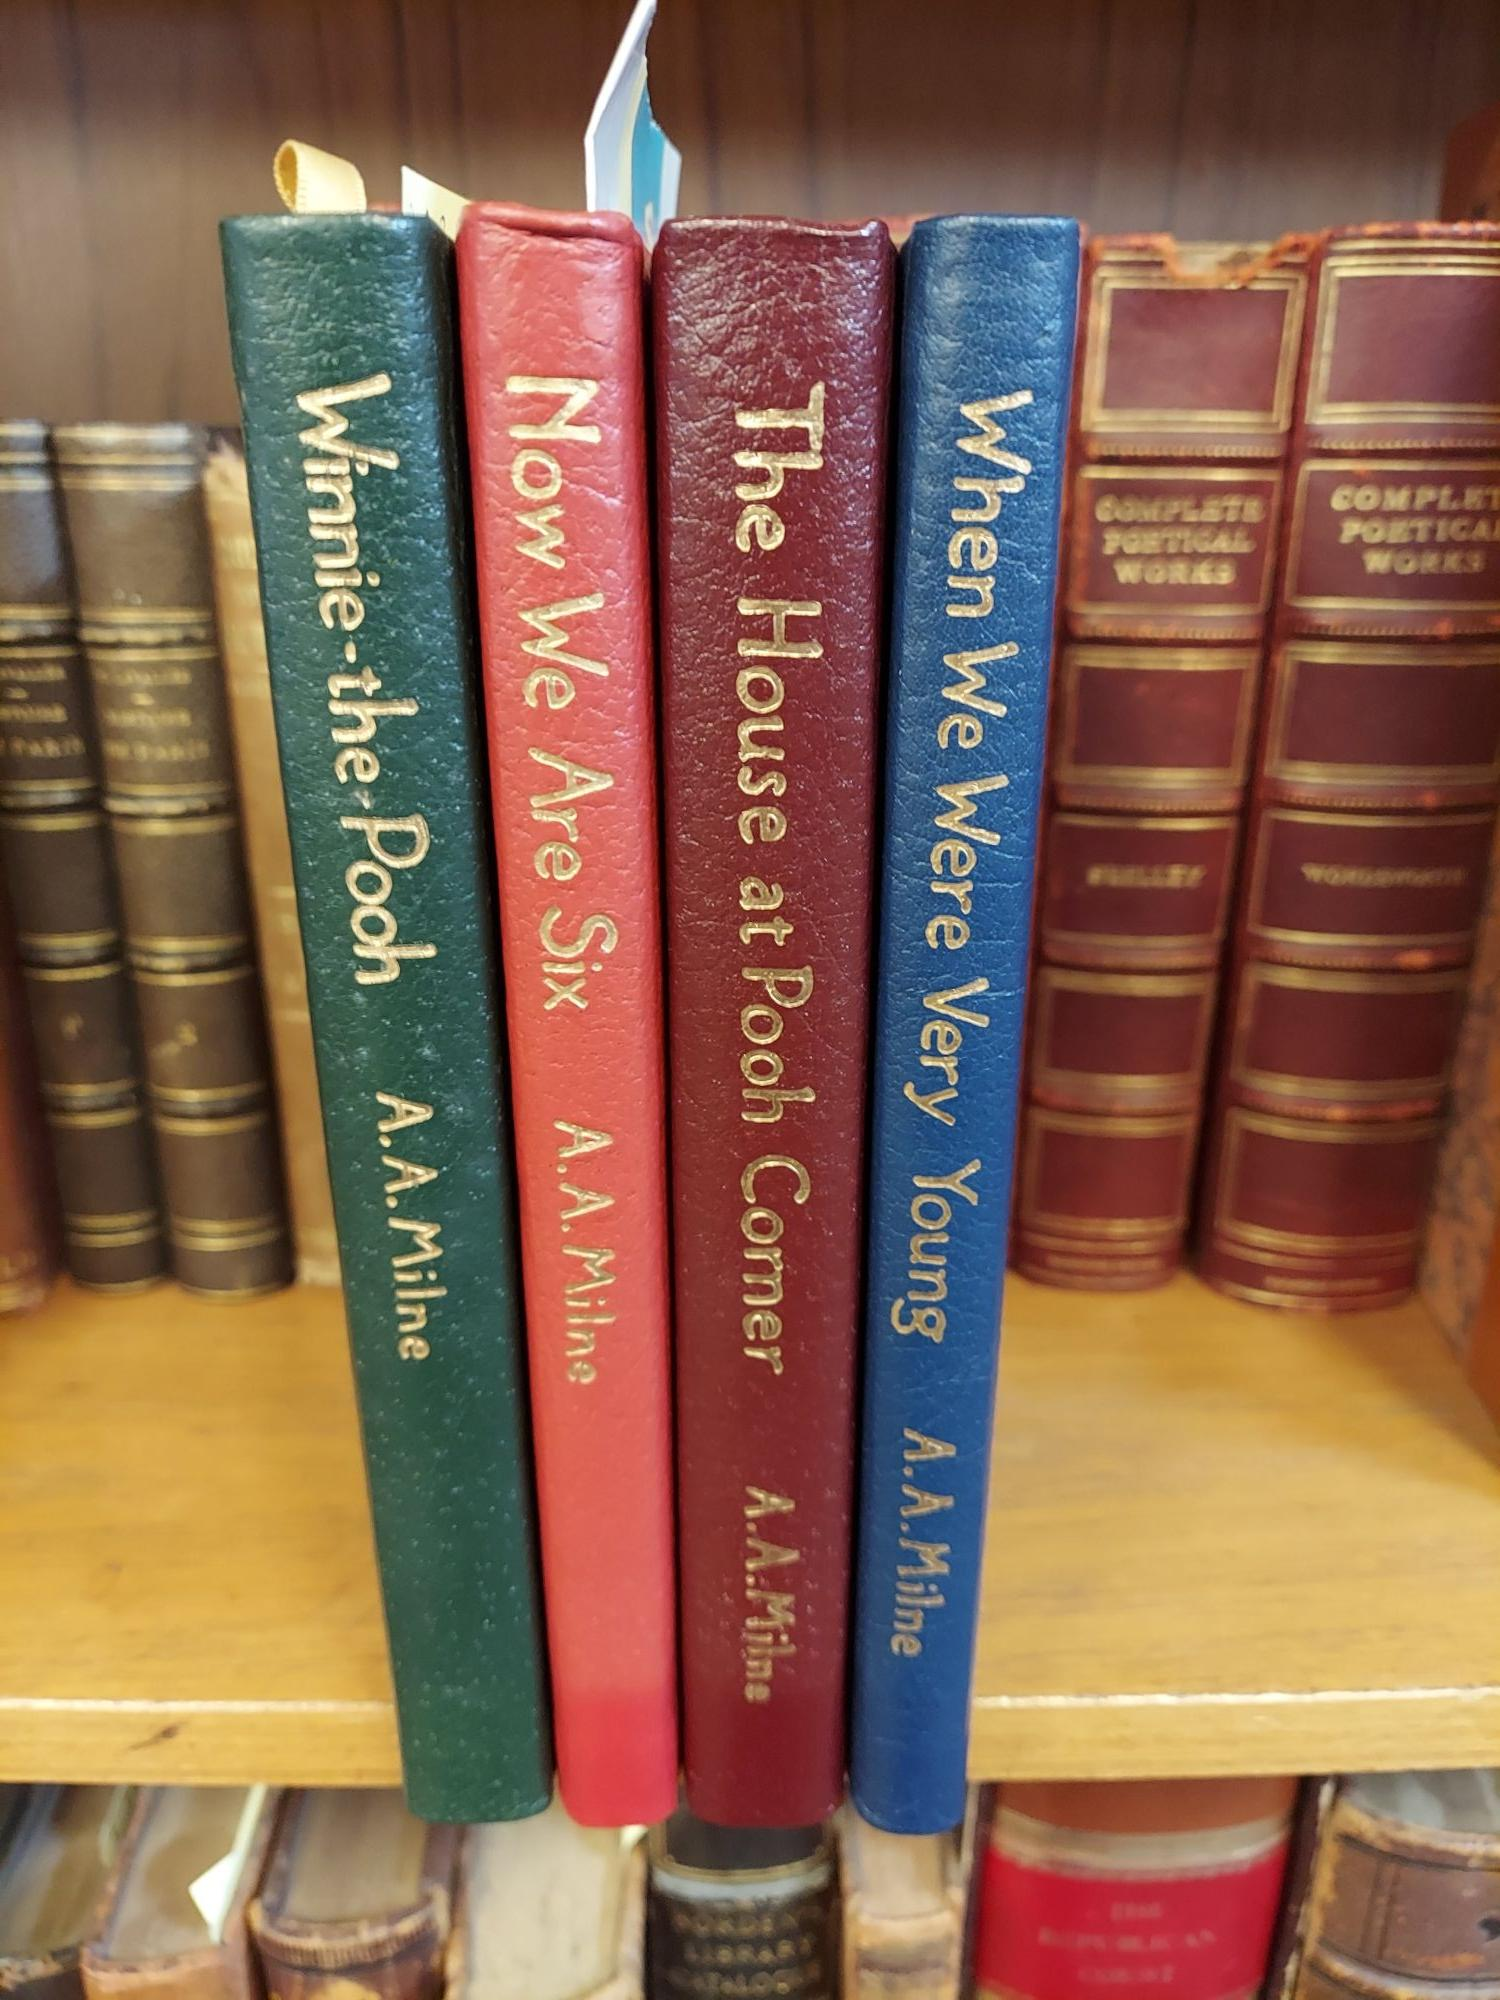 THE COLLECTED STORIES OF A.A. MILNE: WINNIE-THE-POOH/ THE HOUSE AT POOH CORNER/ WHEN WE WERE YOUNG/ NOW WE ARE SIX. A. A. Milne.